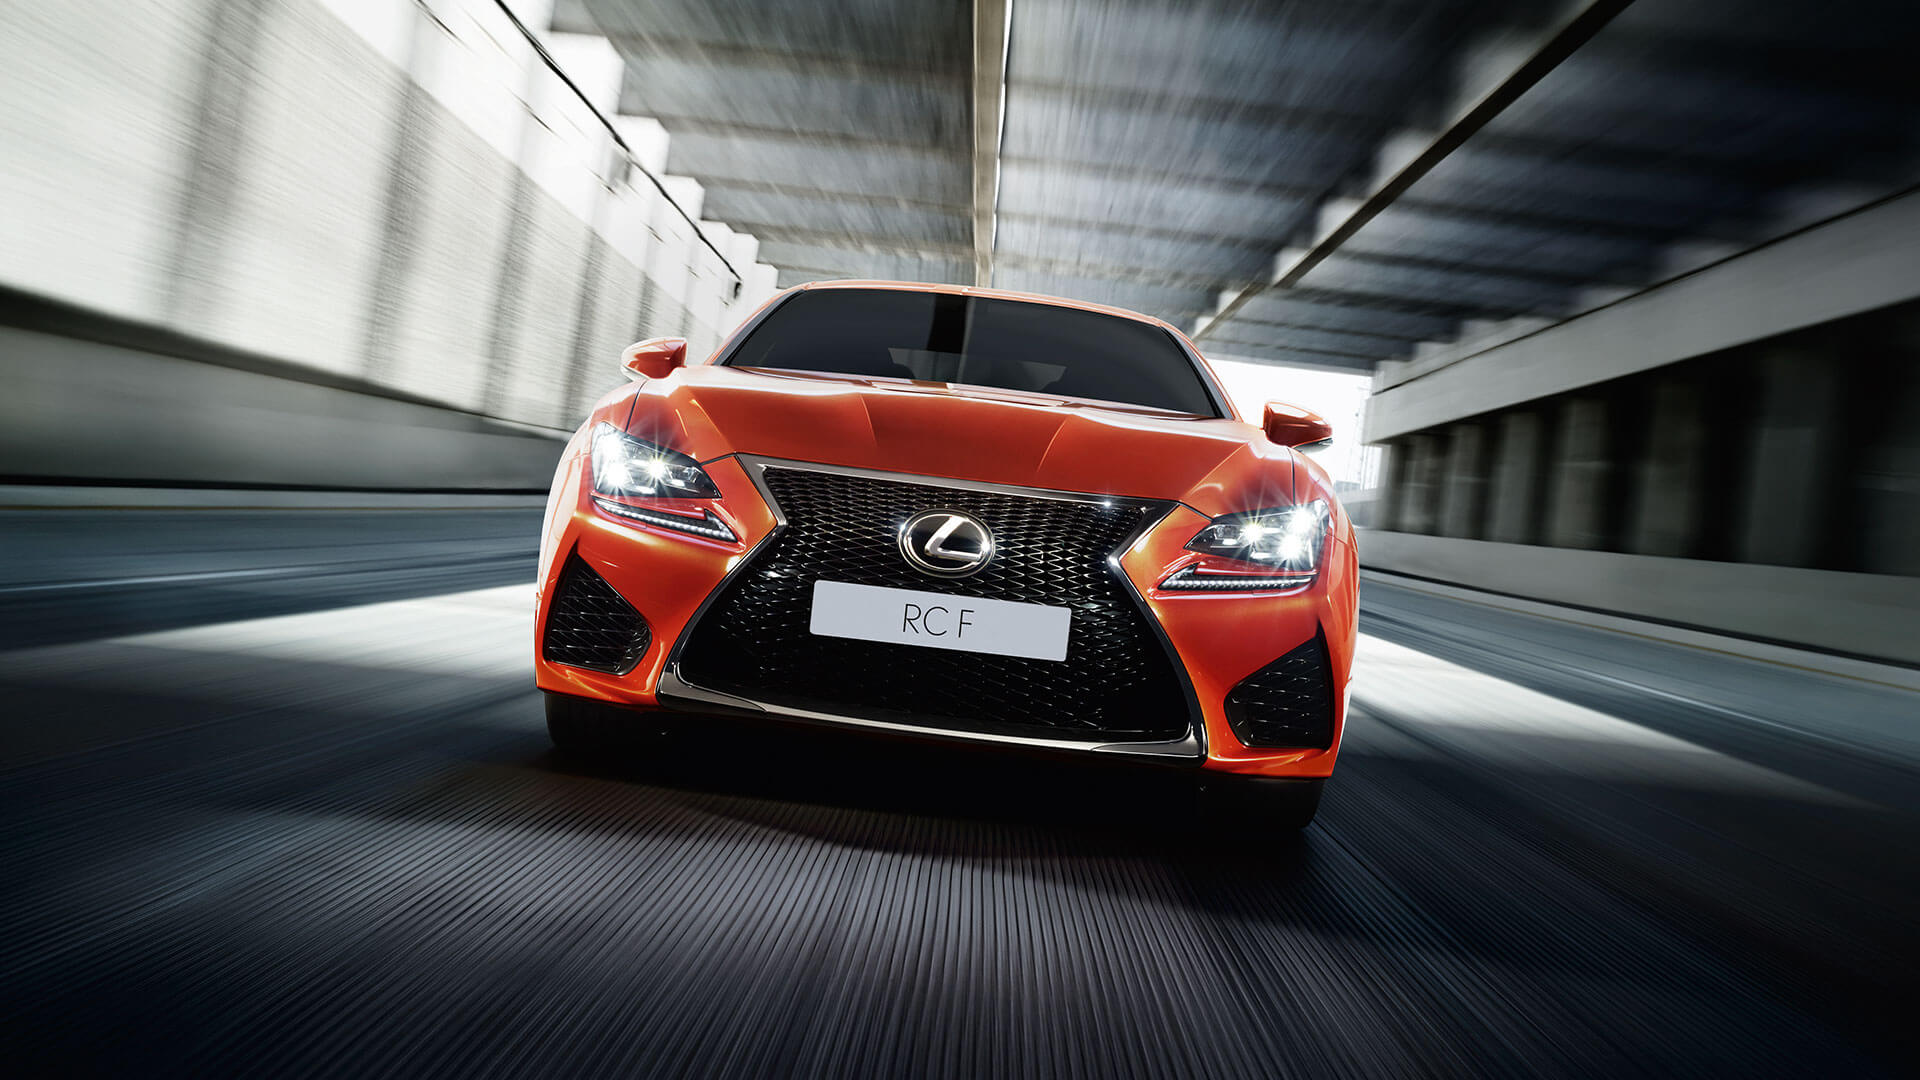 2017 lexus rc f next steps personalise